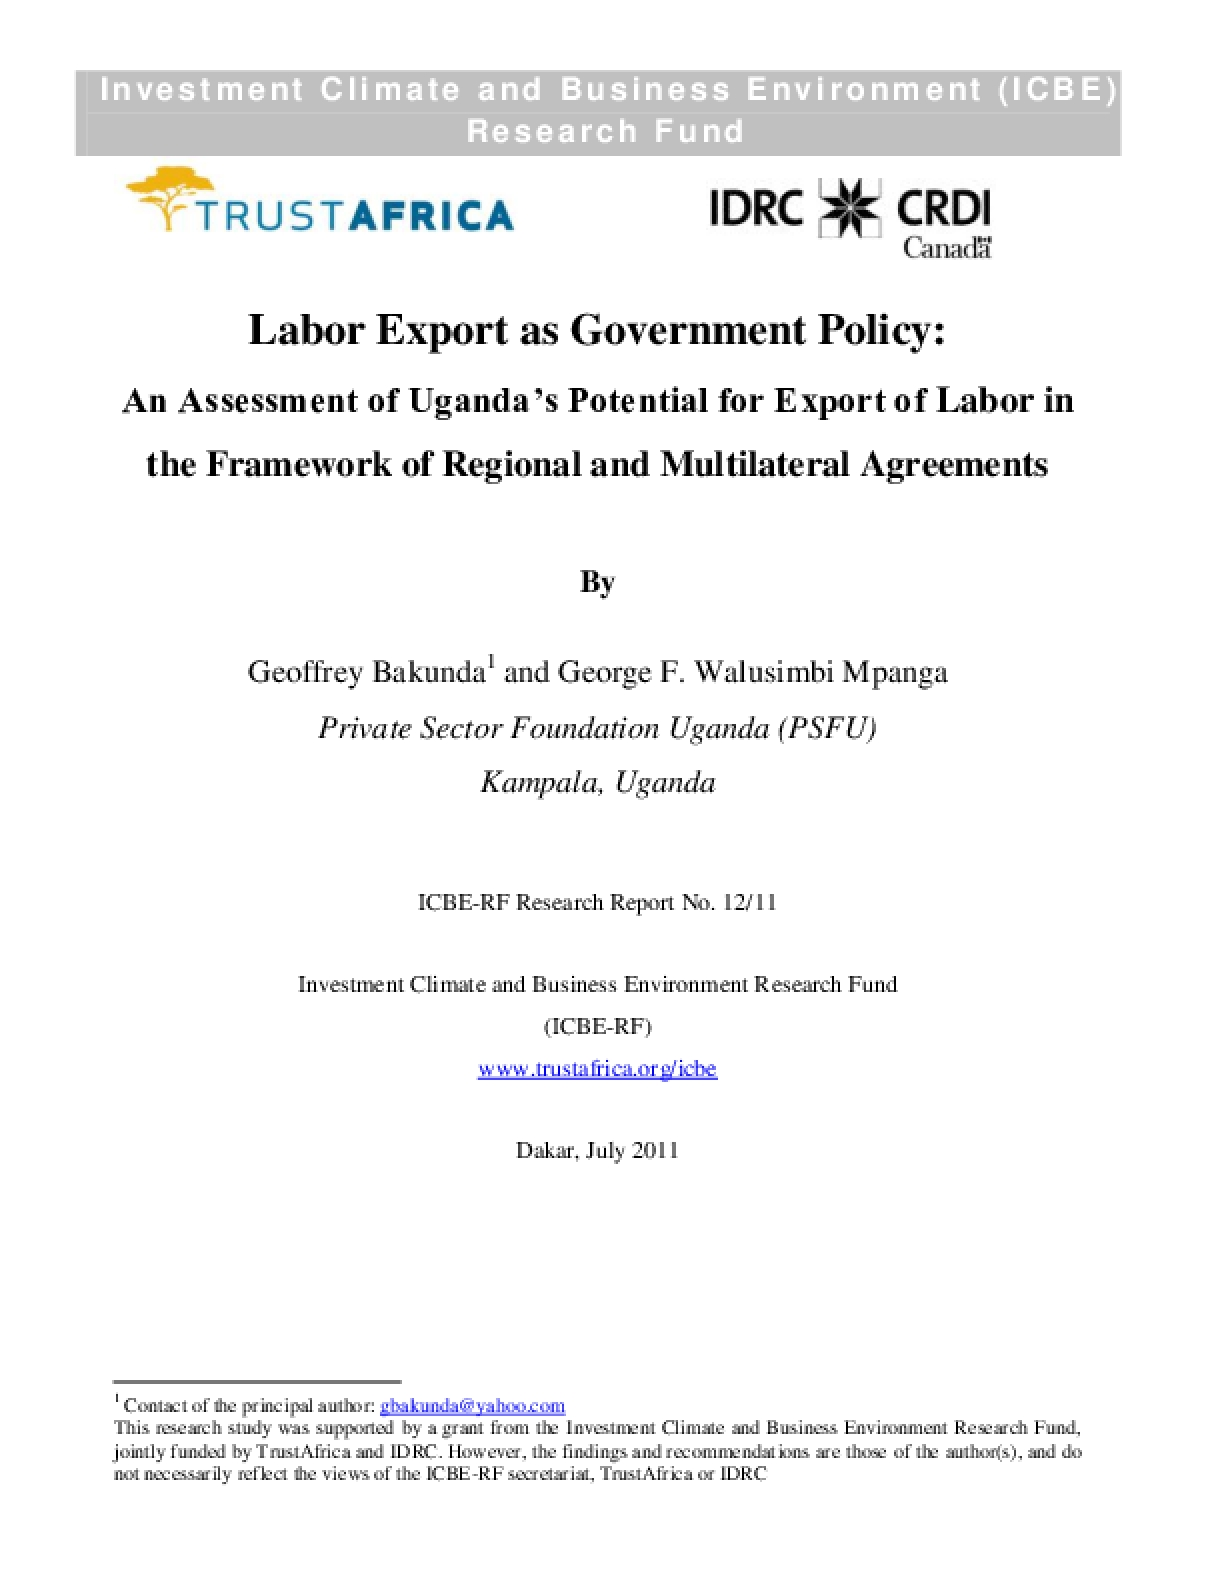 Labor Export as Government Policy An Assessment of Uganda's Potential for Export of Labor in the Framework of Regional and Multilateral Agreements